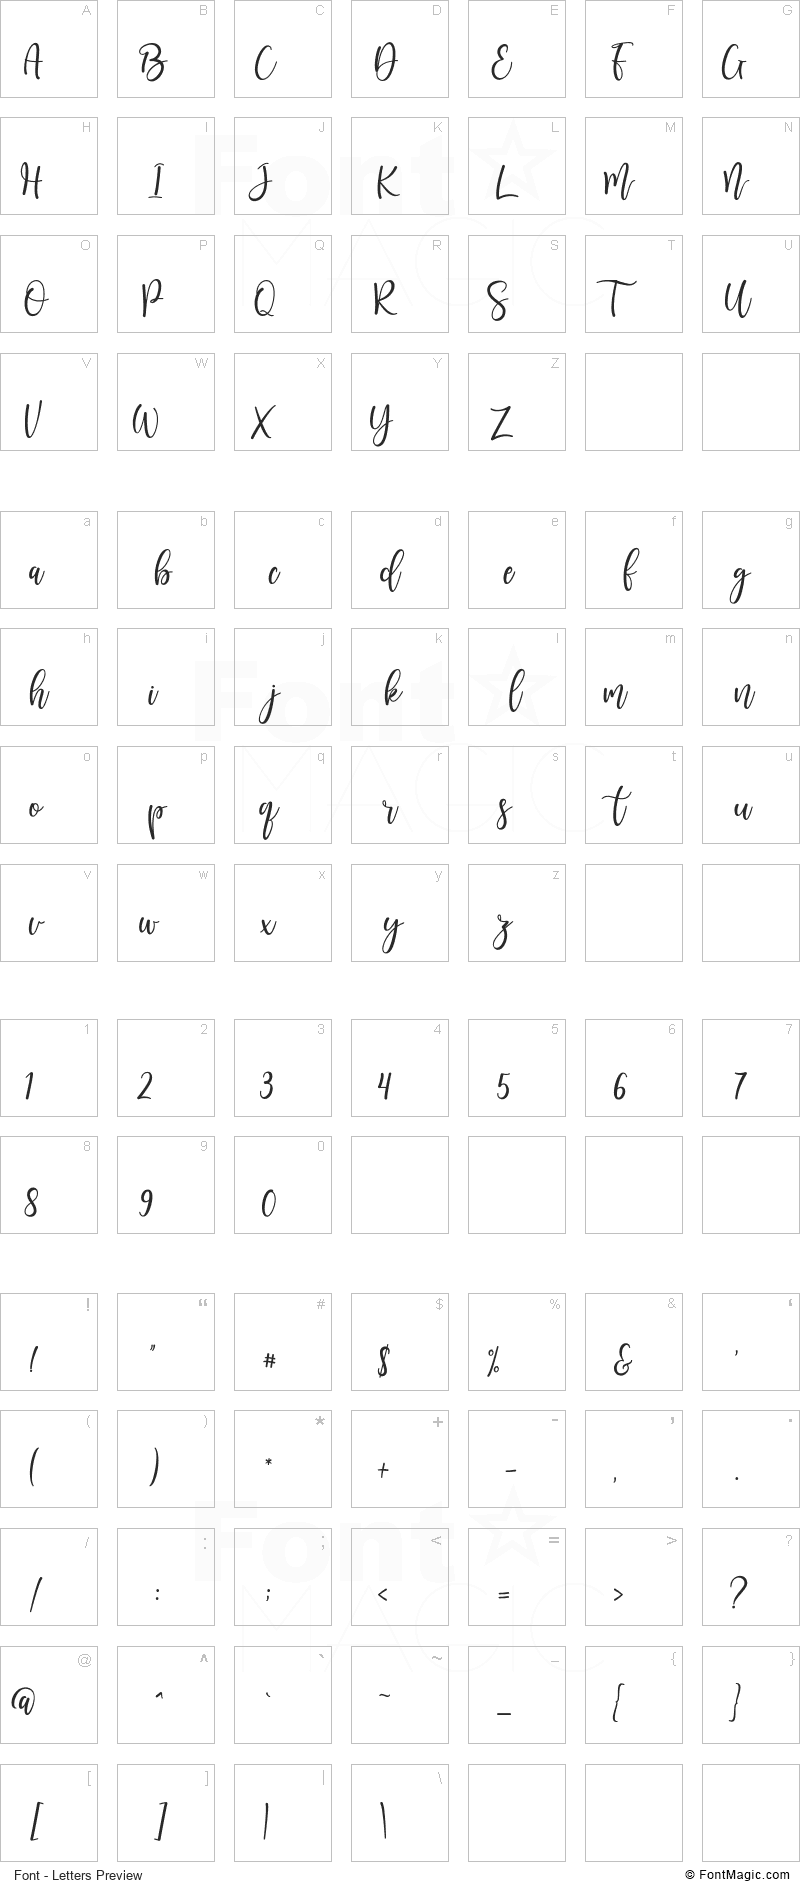 Sunkisa Font - All Latters Preview Chart